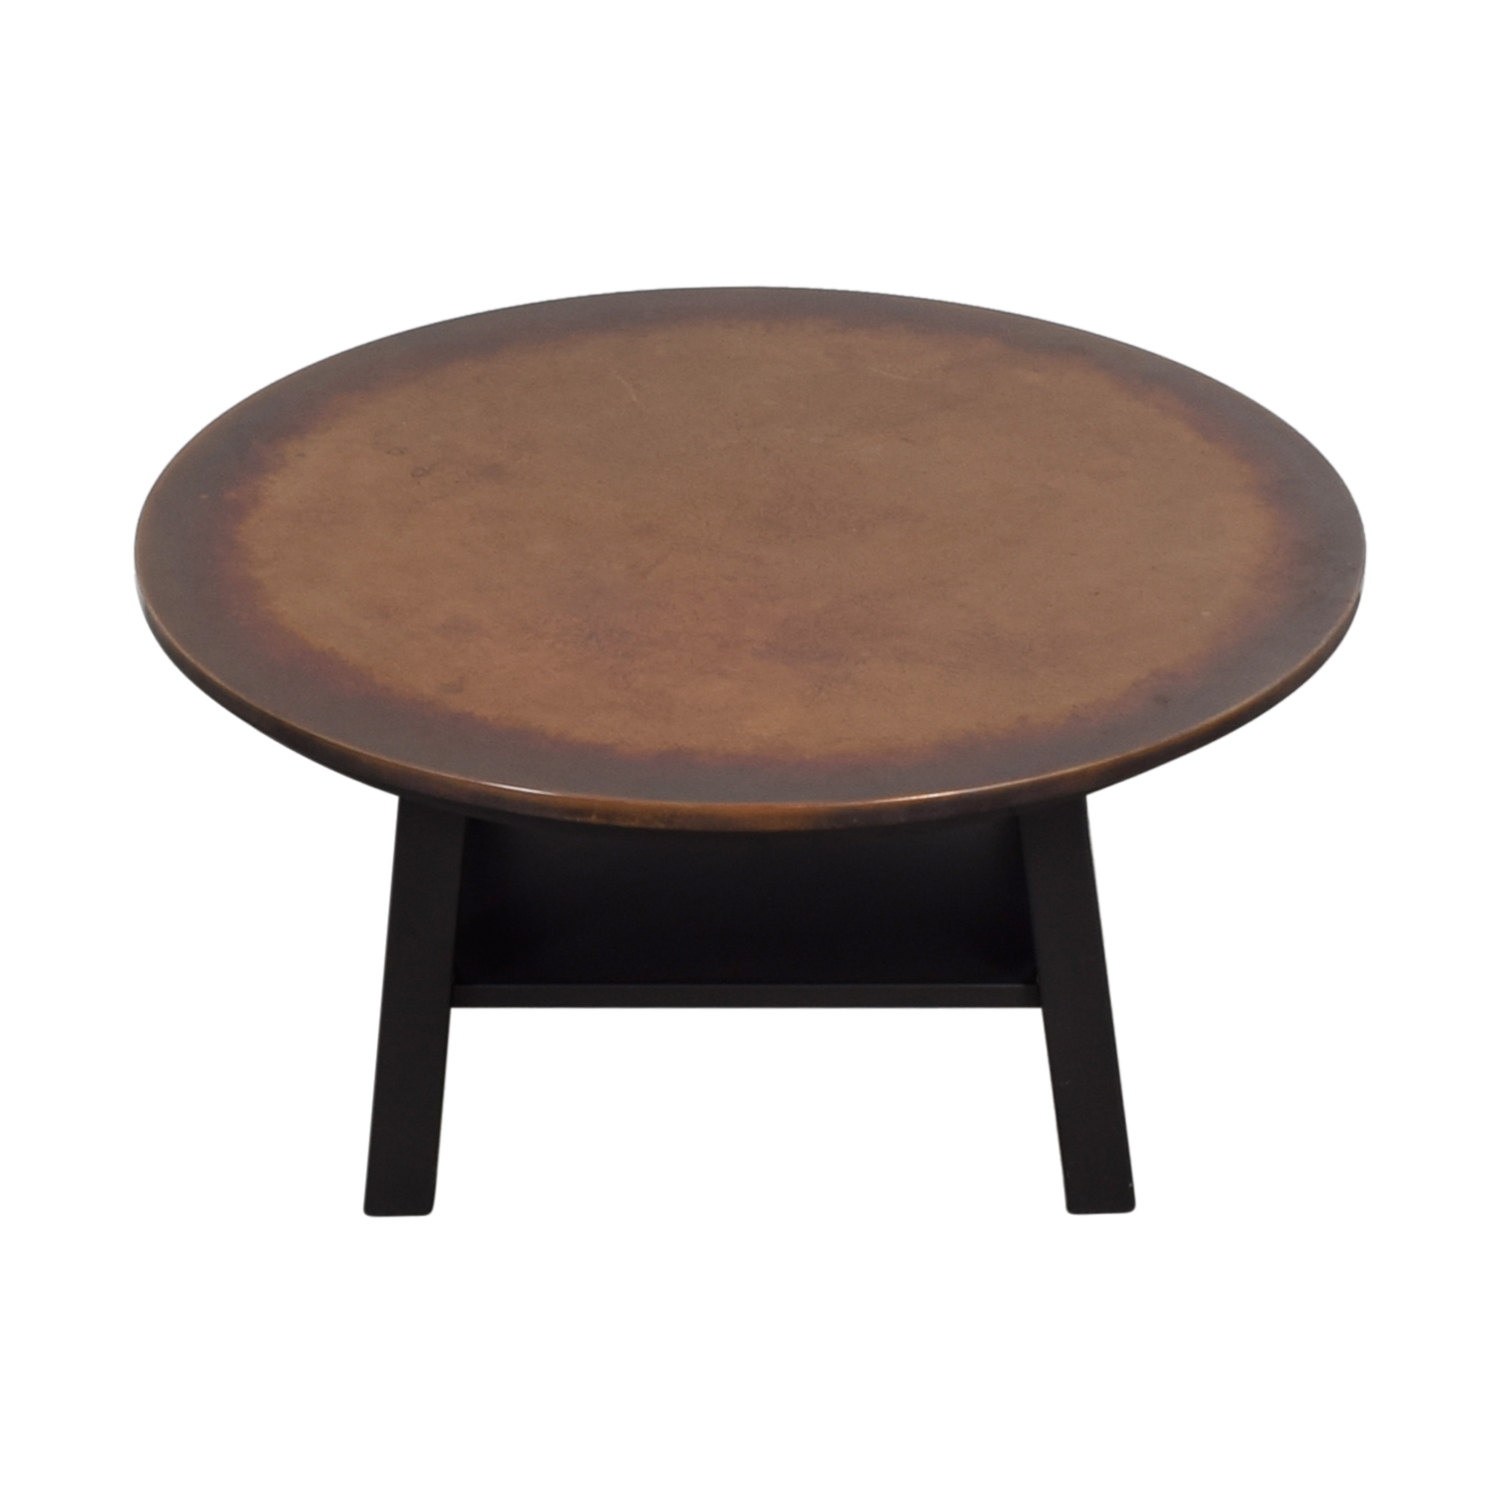 Round Copper Top Coffee Table nyc